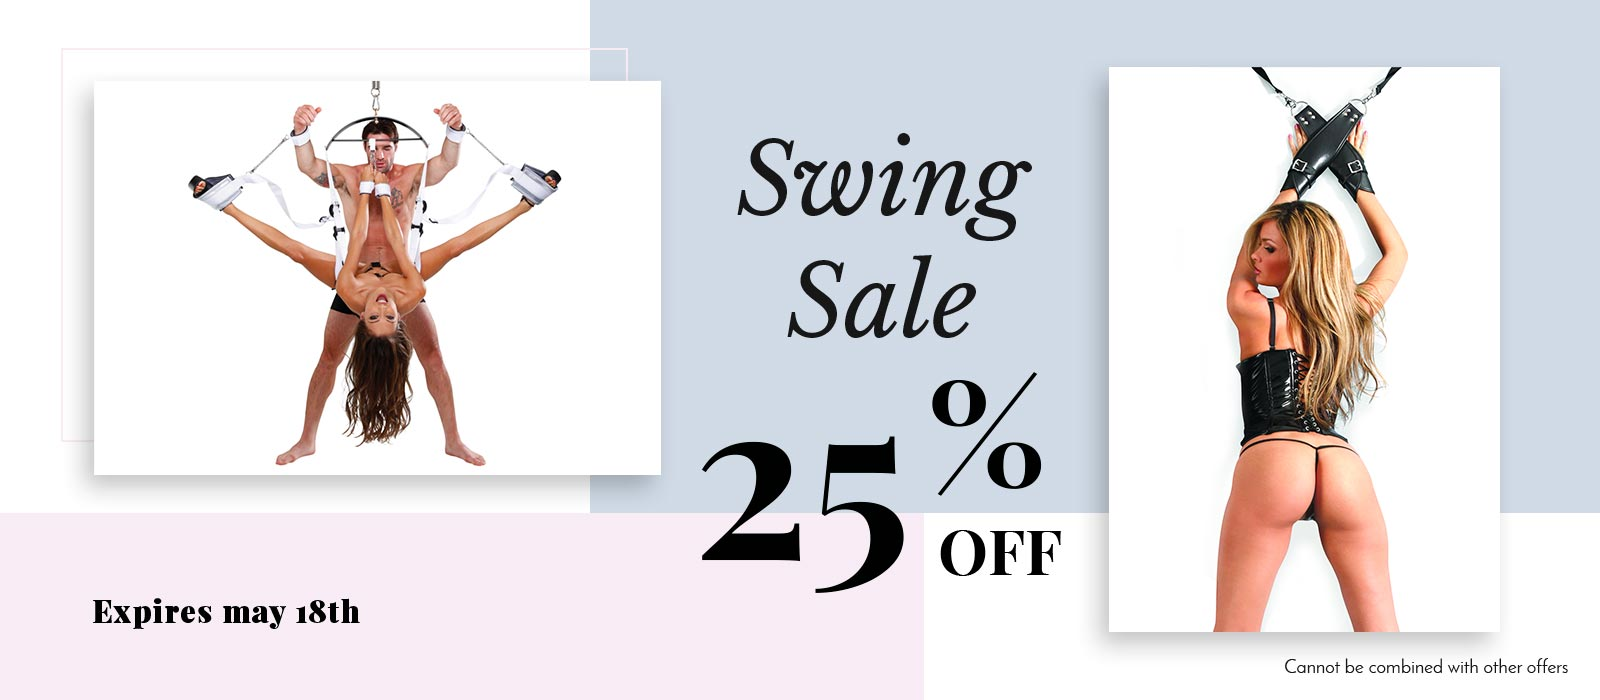 Swing and Sling Sale 25% off